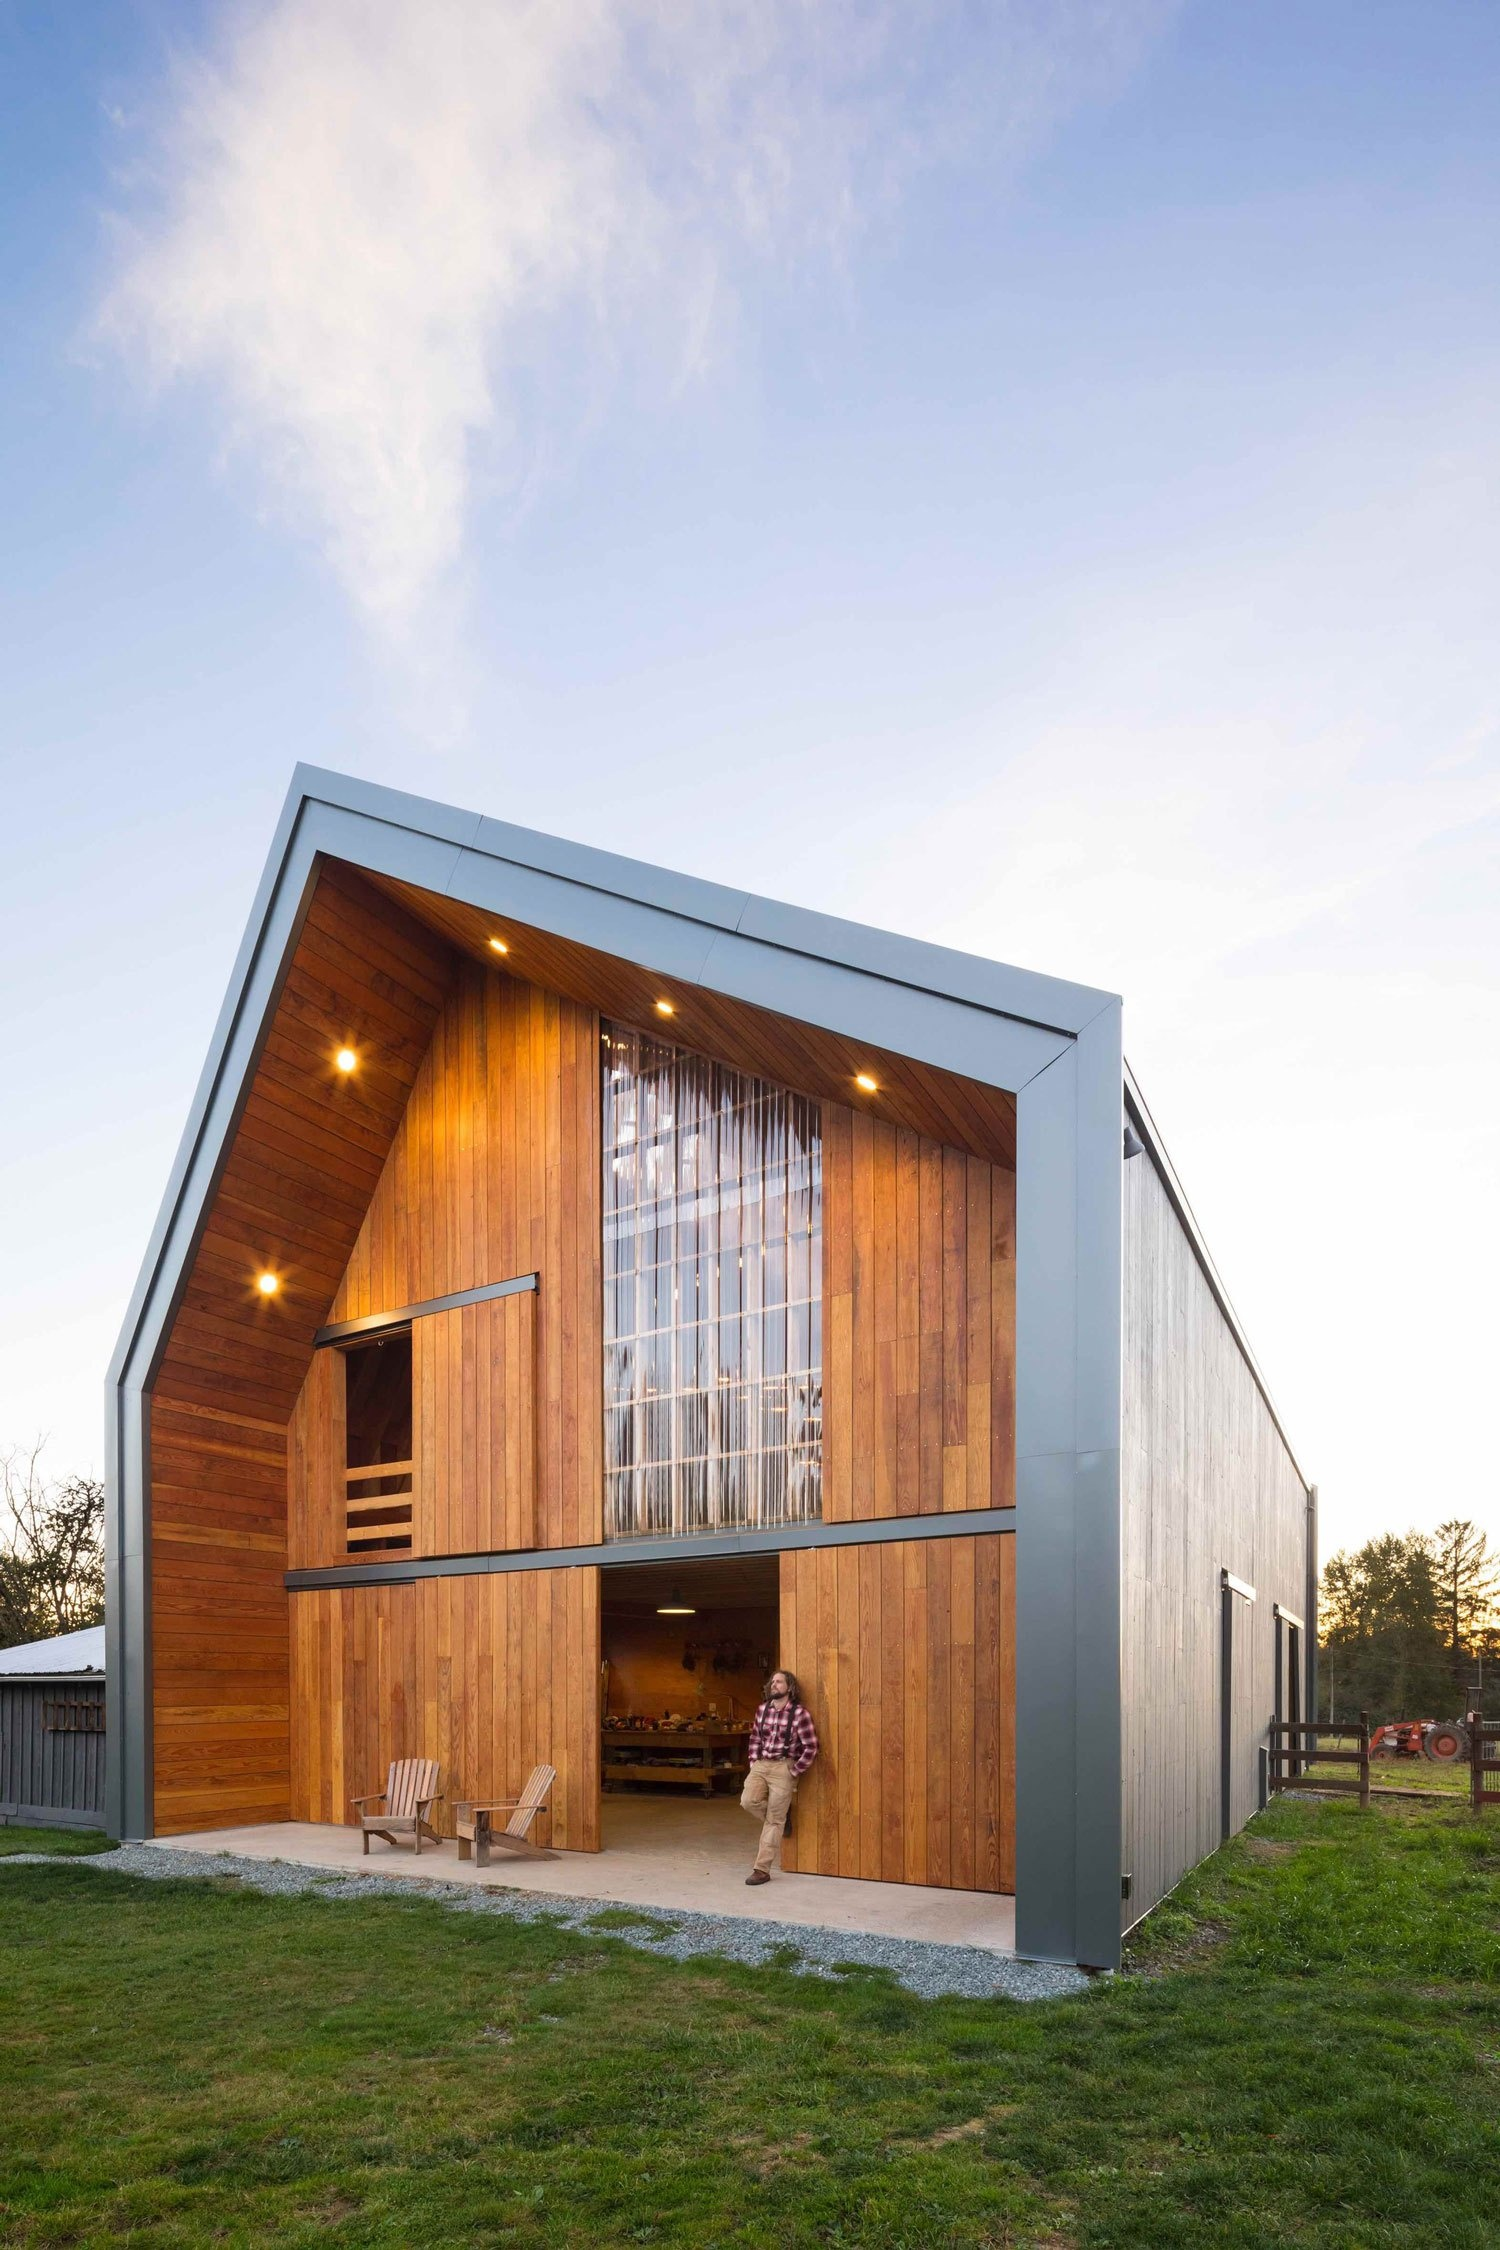 swallowfield-barn-in-langley-bc-canada-by-motiv-architects-yellowtrace-08